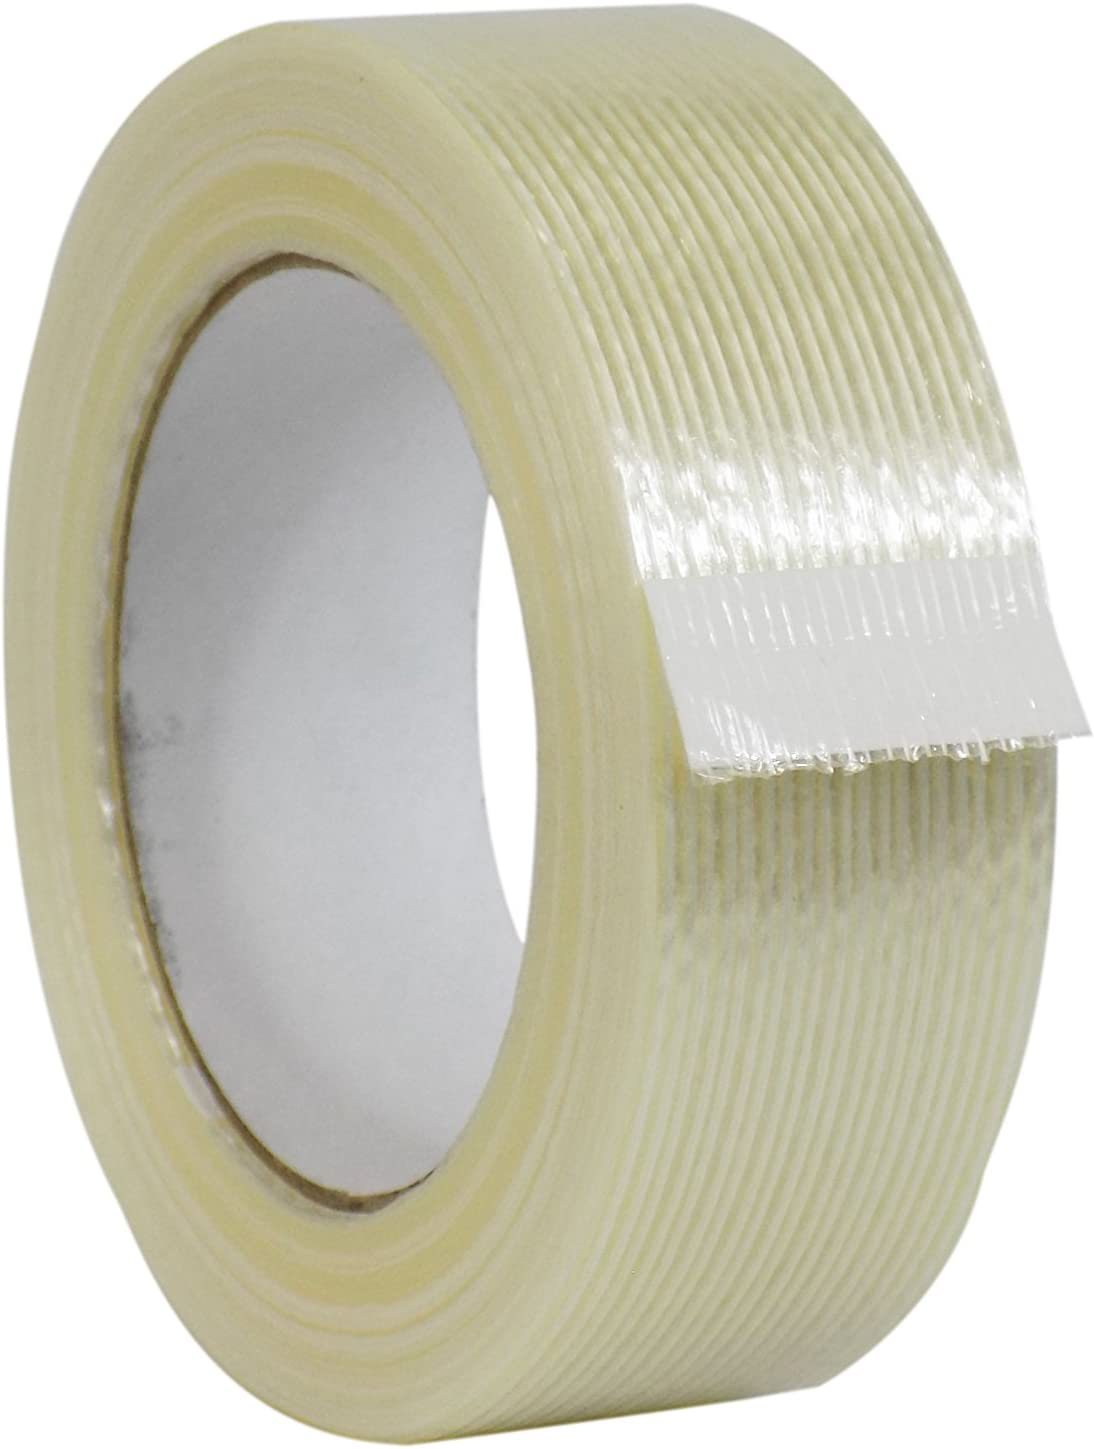 Global Commodity Adhesive Tapes Market 2020 Industry Overview – 3M, Berry  Global, Lintec, tesa, Lohmann GmbH, Nitto Denko – The Courier